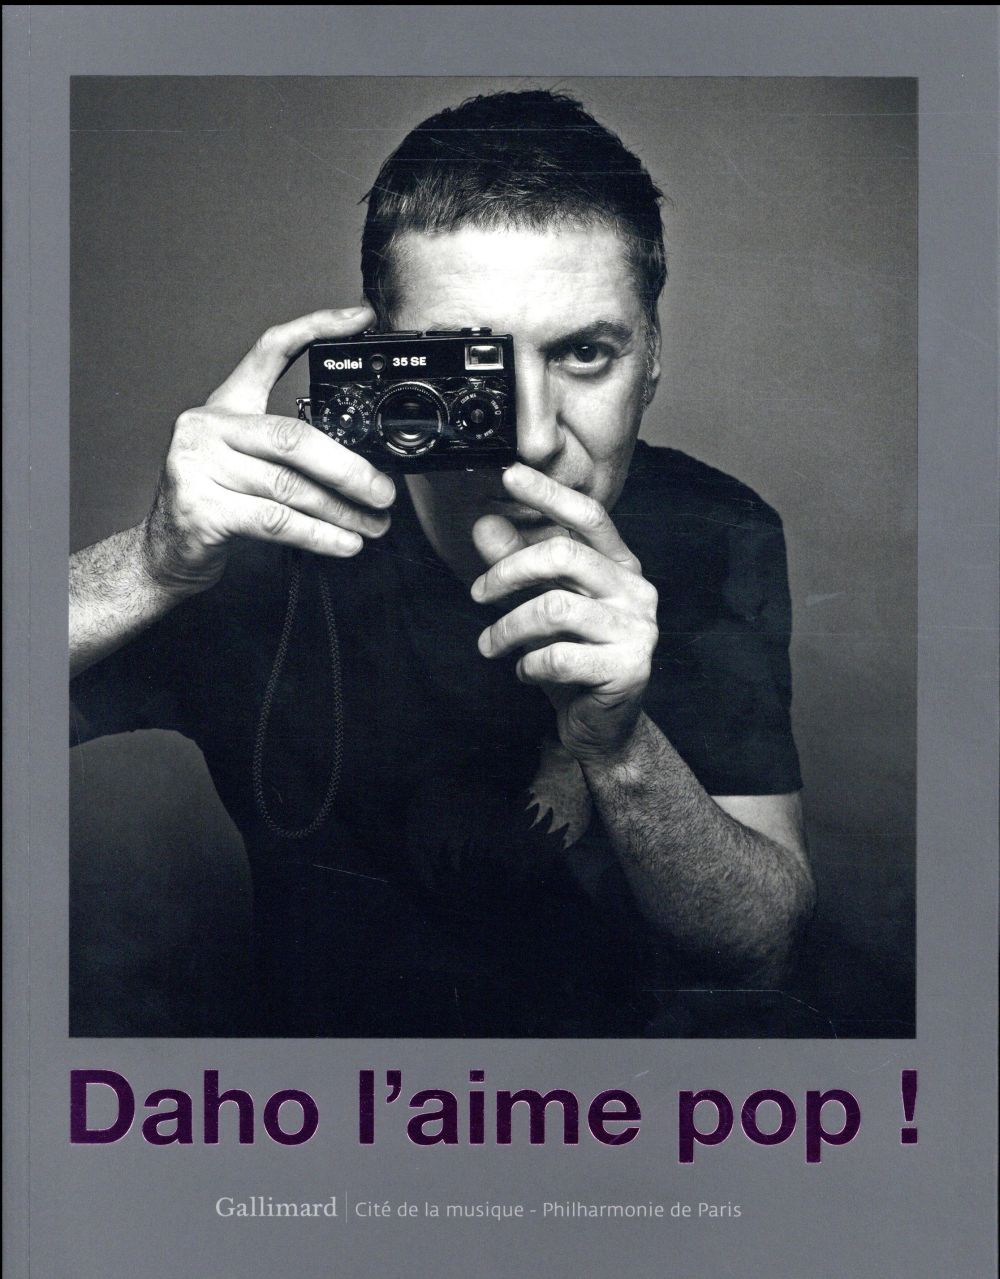 Daho l'aime pop !